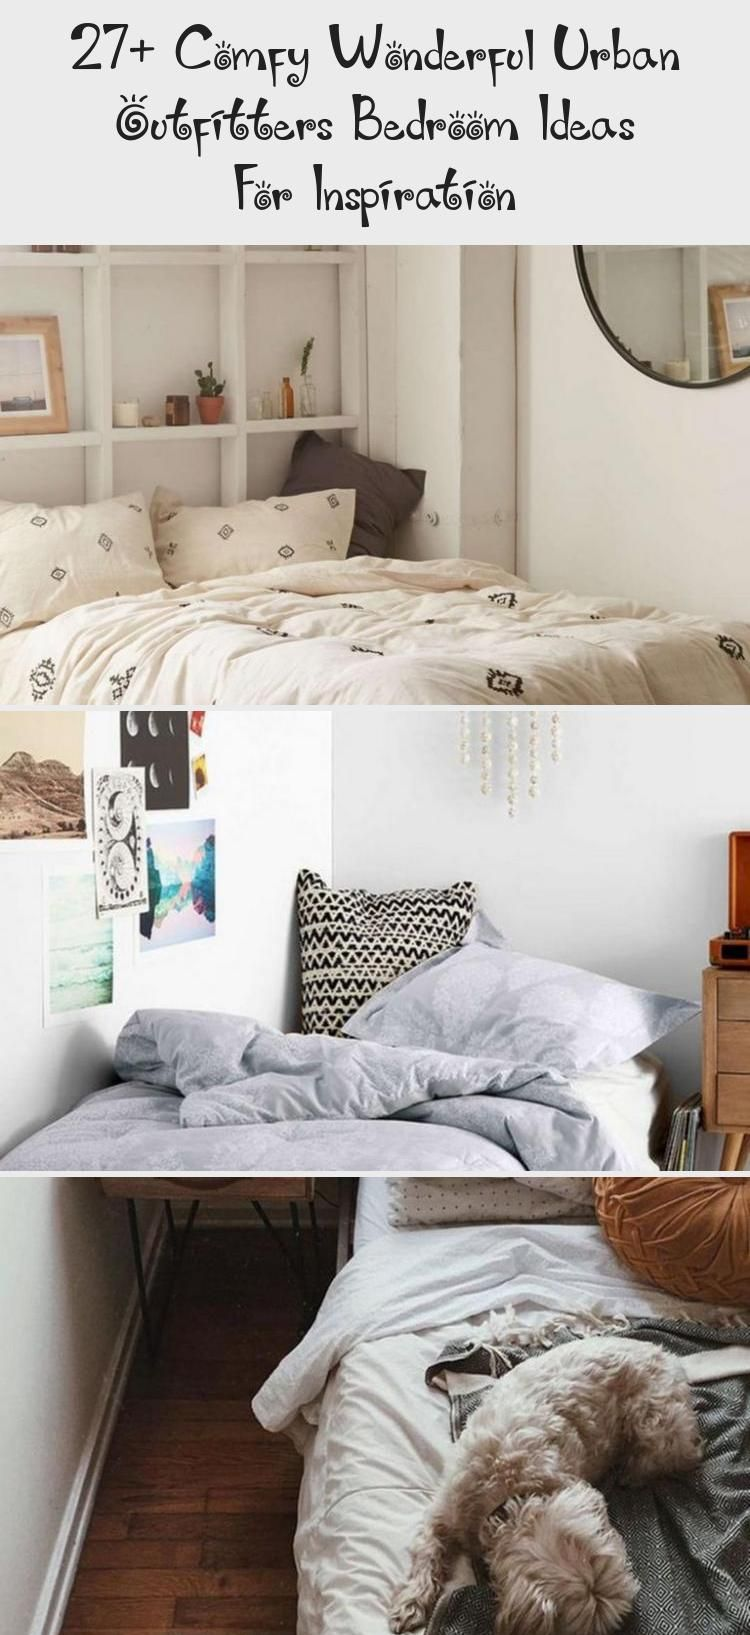 27 Comfy Wonderful Urban Outfitters Bedroom Ideas For Inspiration In 2020 With Images Urban Outfitters Bedroom Bedroom Bedroom Decor